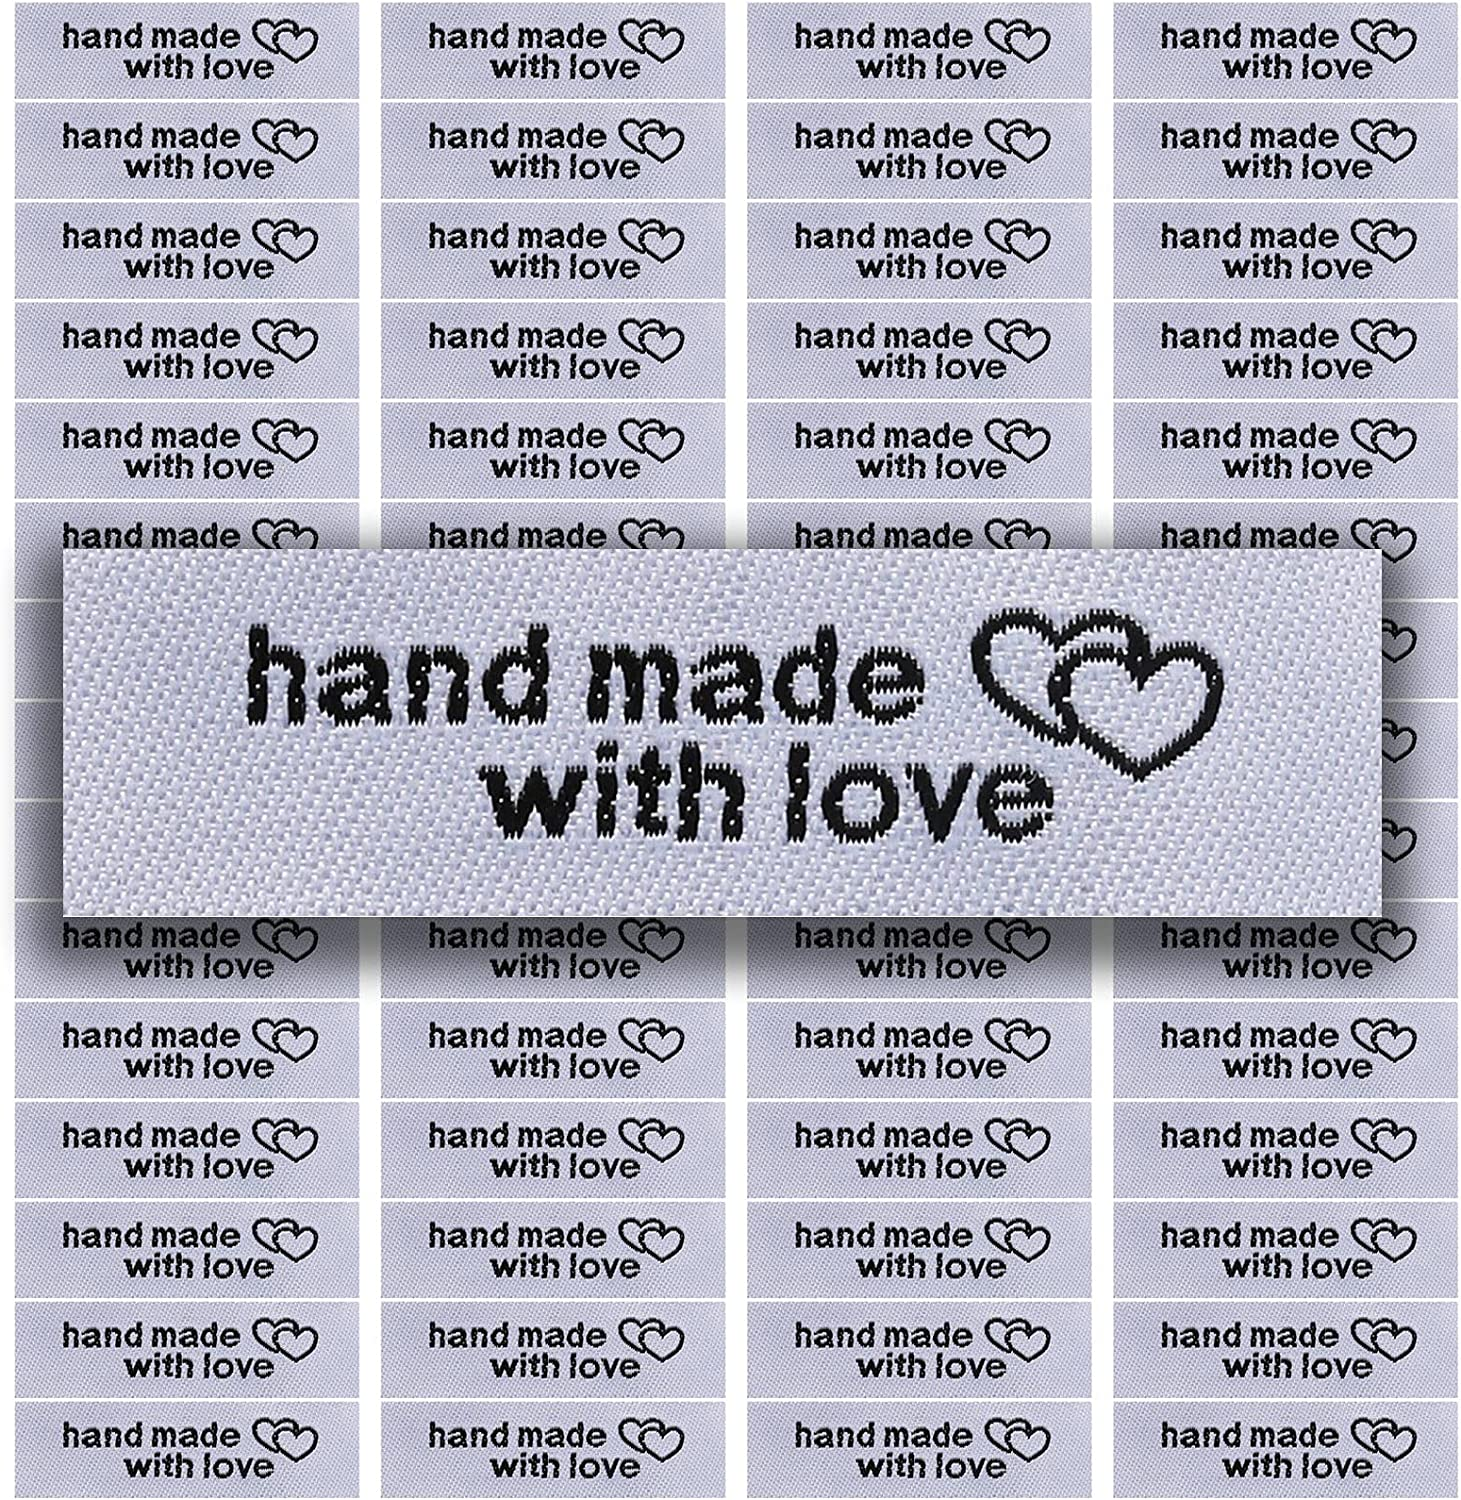 120 Pieces Personalized Sewing Labels Sew on Clothing Labels Handmade Interlocking Heart Pattern Label Tags for Handmade Items Clothes (White)